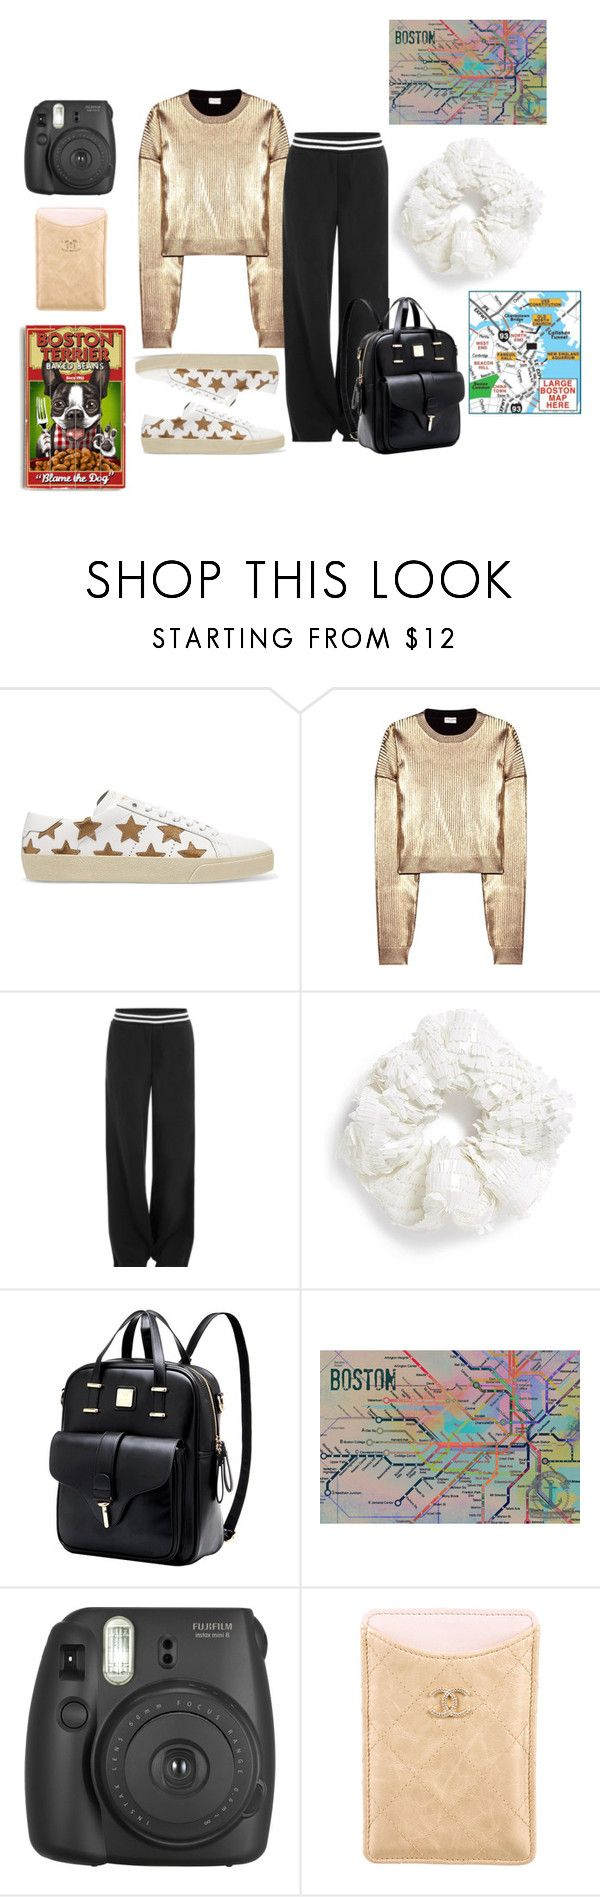 """""""Walking Tour, Boston"""" by christined1960 ❤ liked on Polyvore featuring Yves Saint Laurent, Puma, Topshop, Retrò, Fujifilm, Chanel and ArteHouse"""